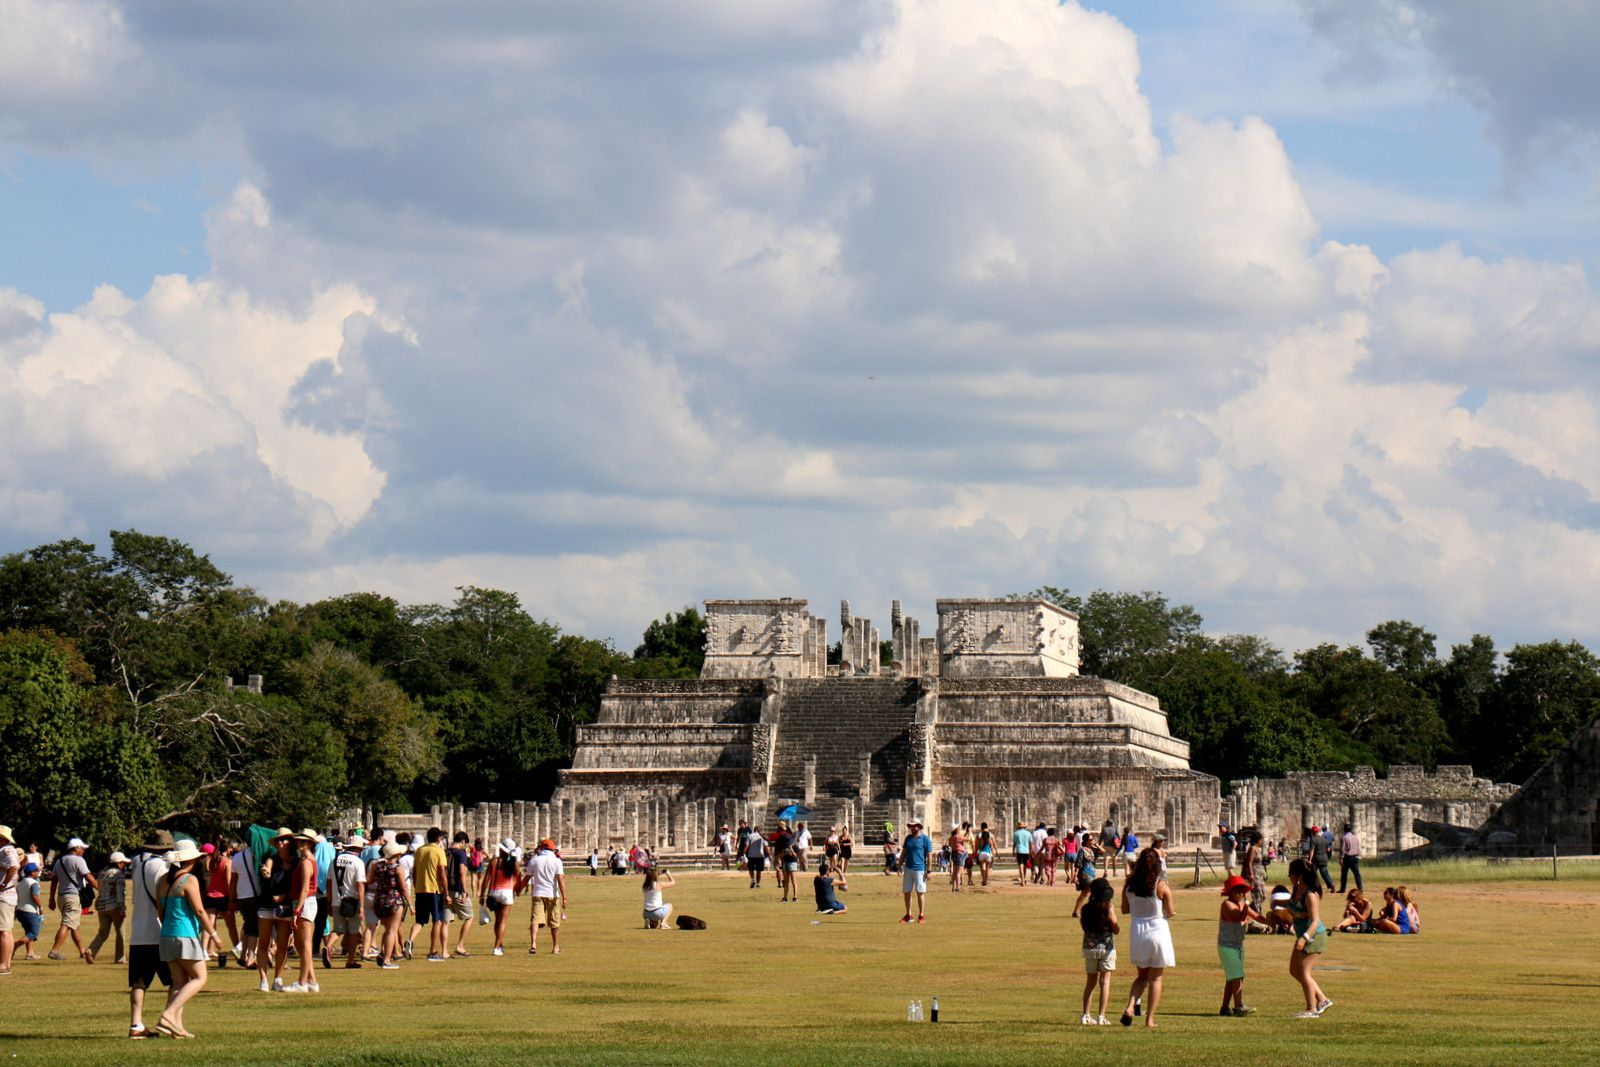 Le temple des guerriers, Chichen Itza (Mexique)